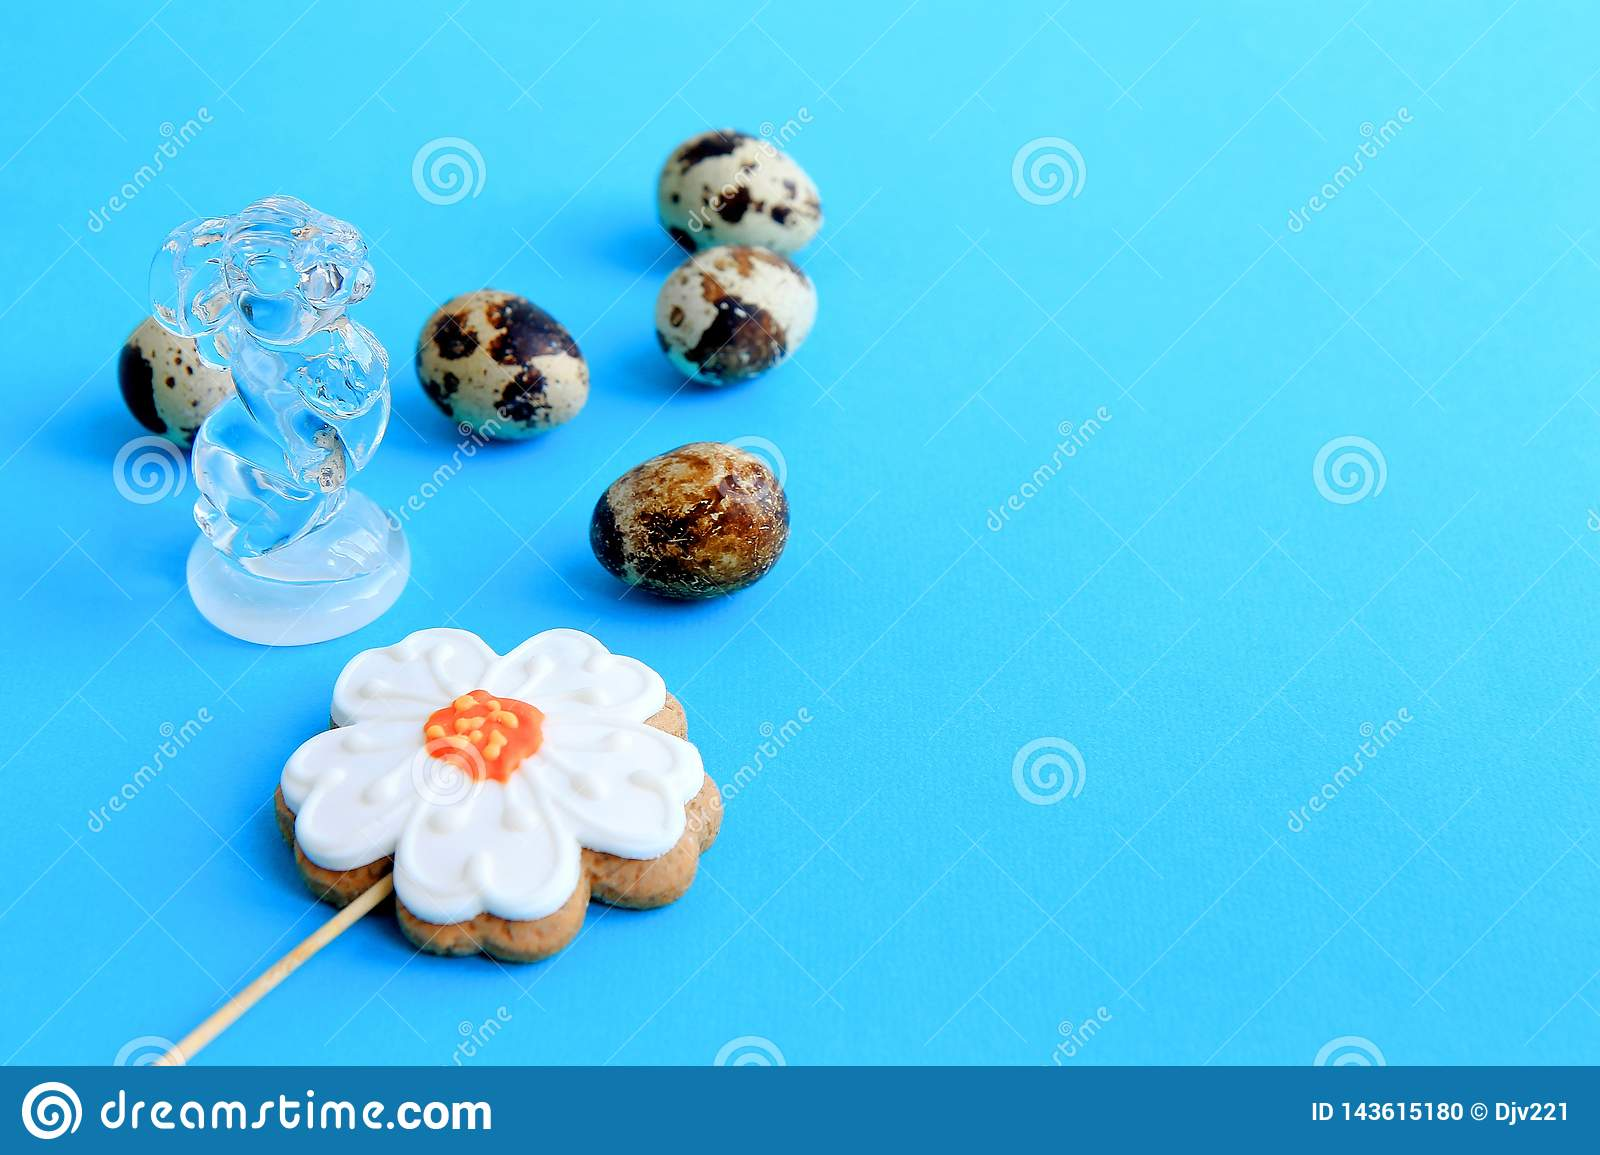 Five speckled quail eggs, a gingerbread in the shape of a flower and a rabbit figurine